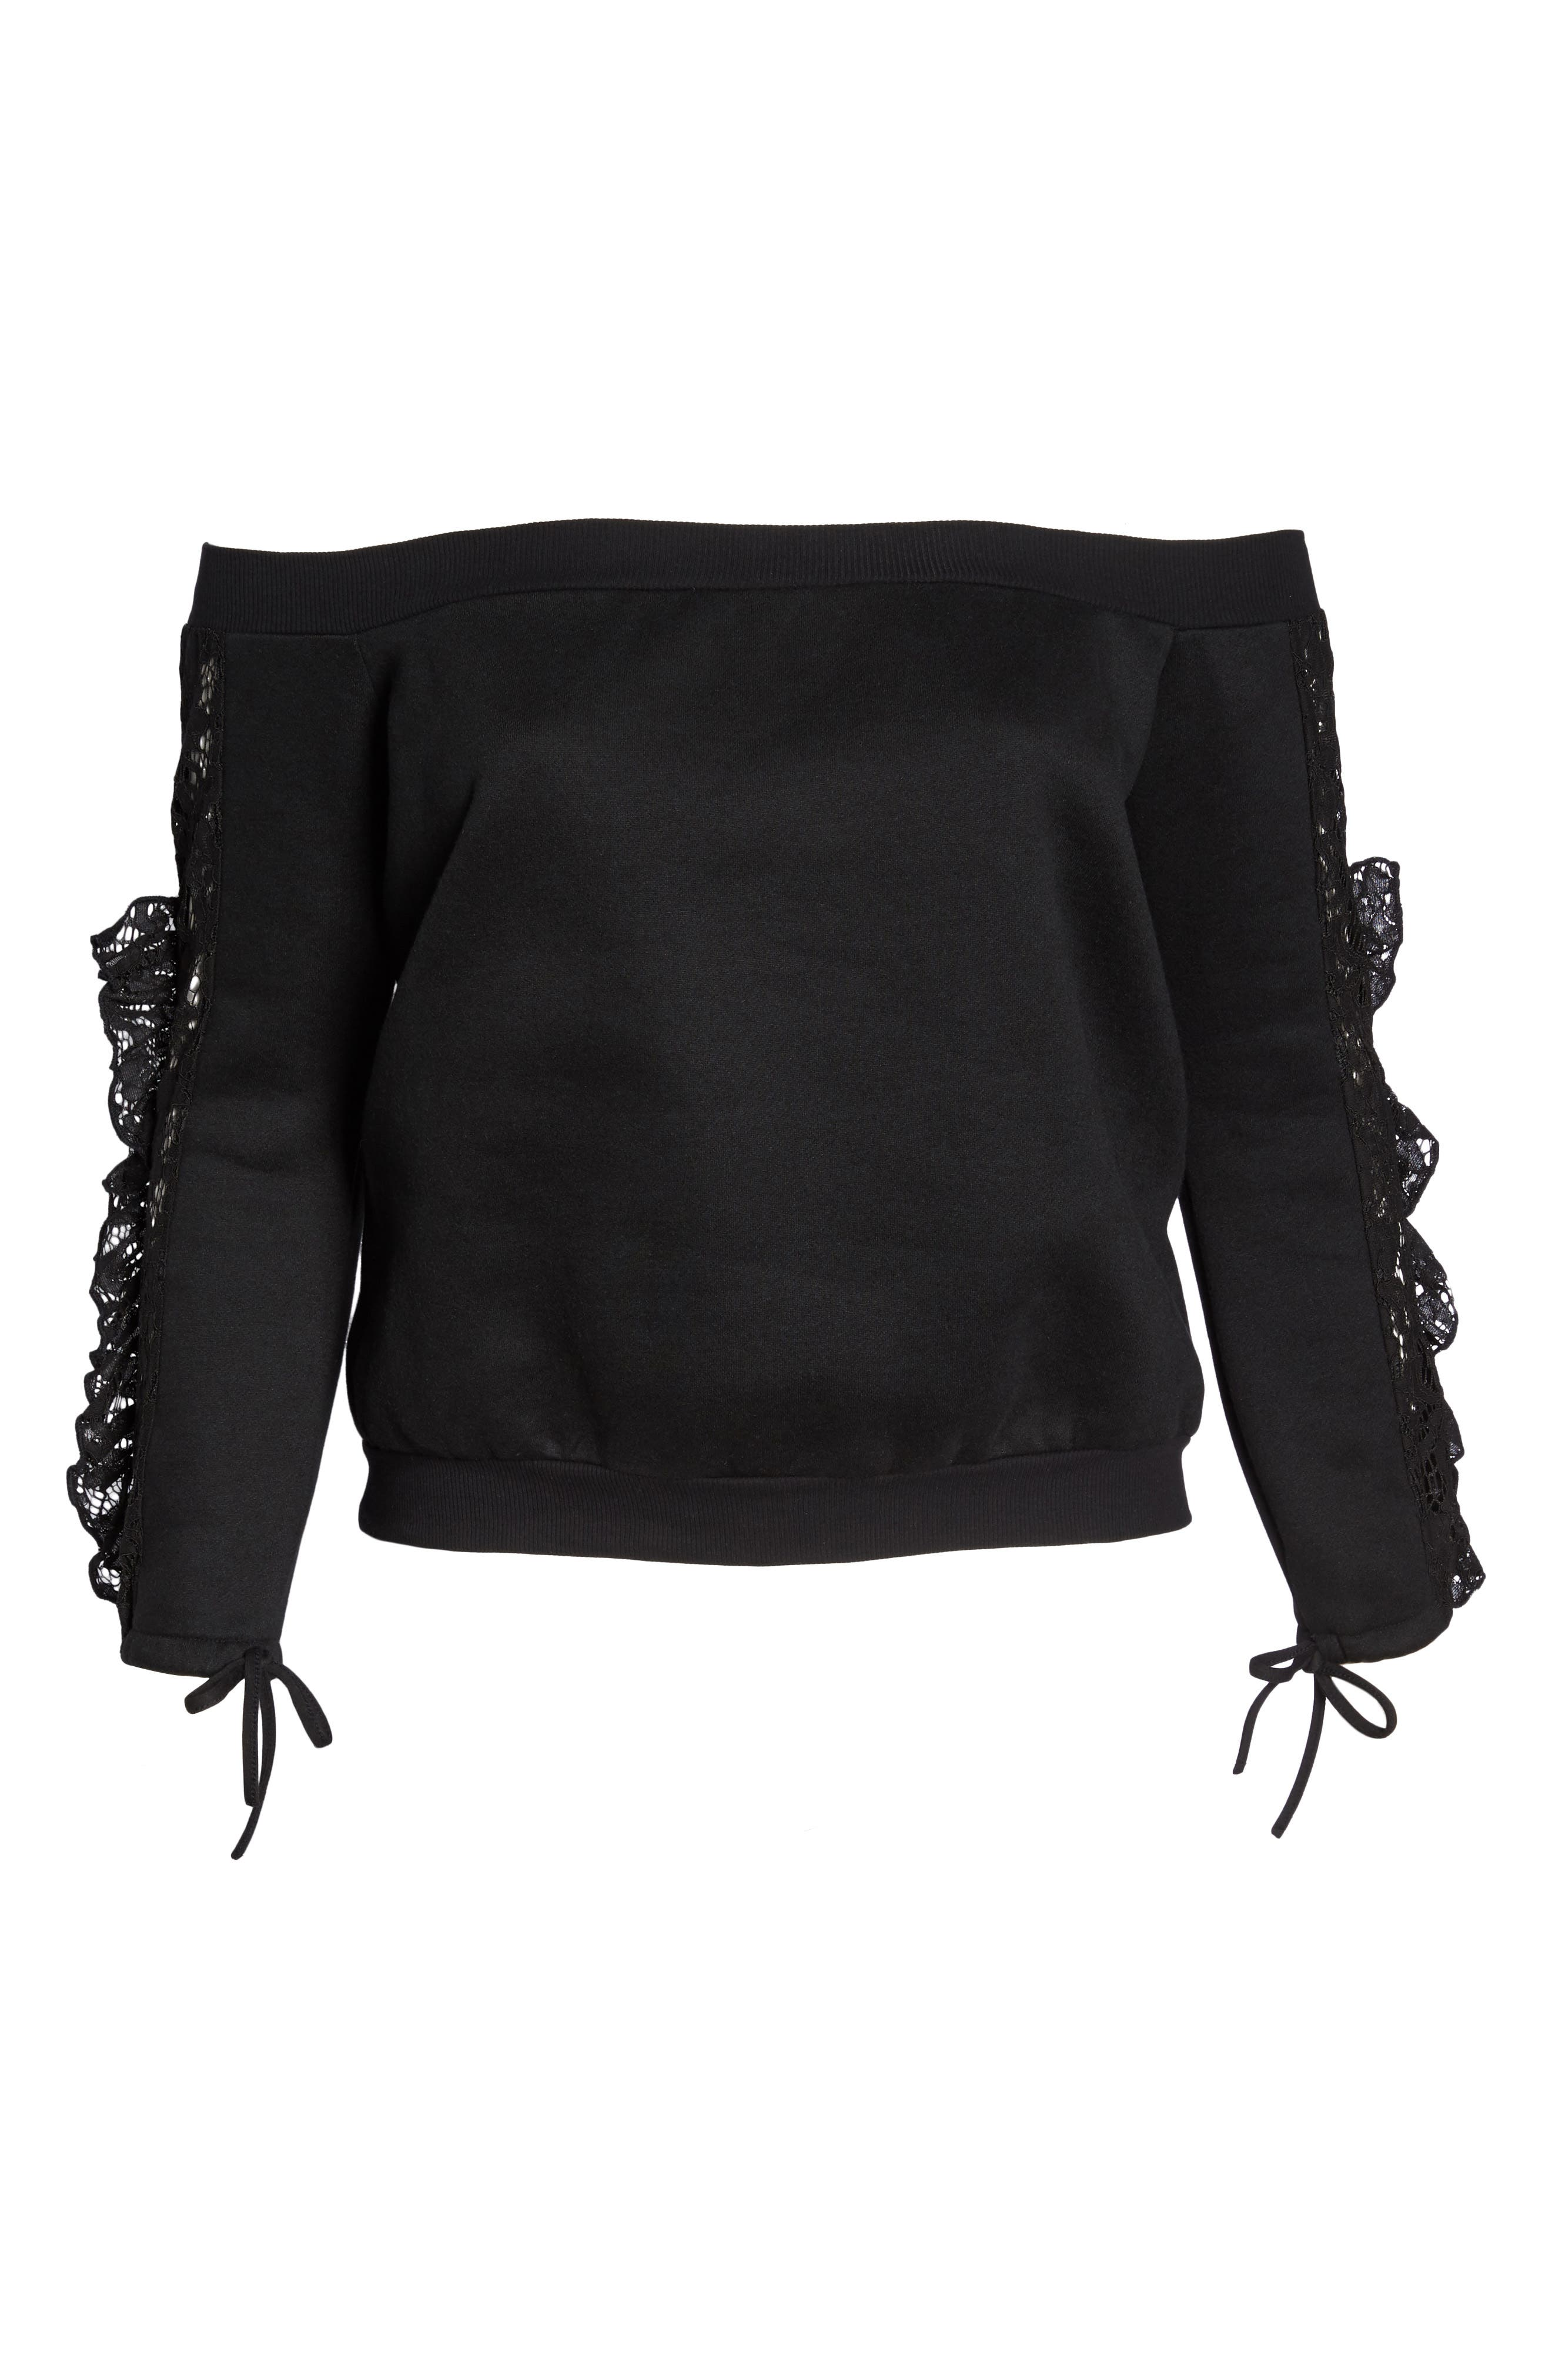 Lace Ruffle Sleeve Off the Shoulder Sweatshirt,                             Alternate thumbnail 7, color,                             Black